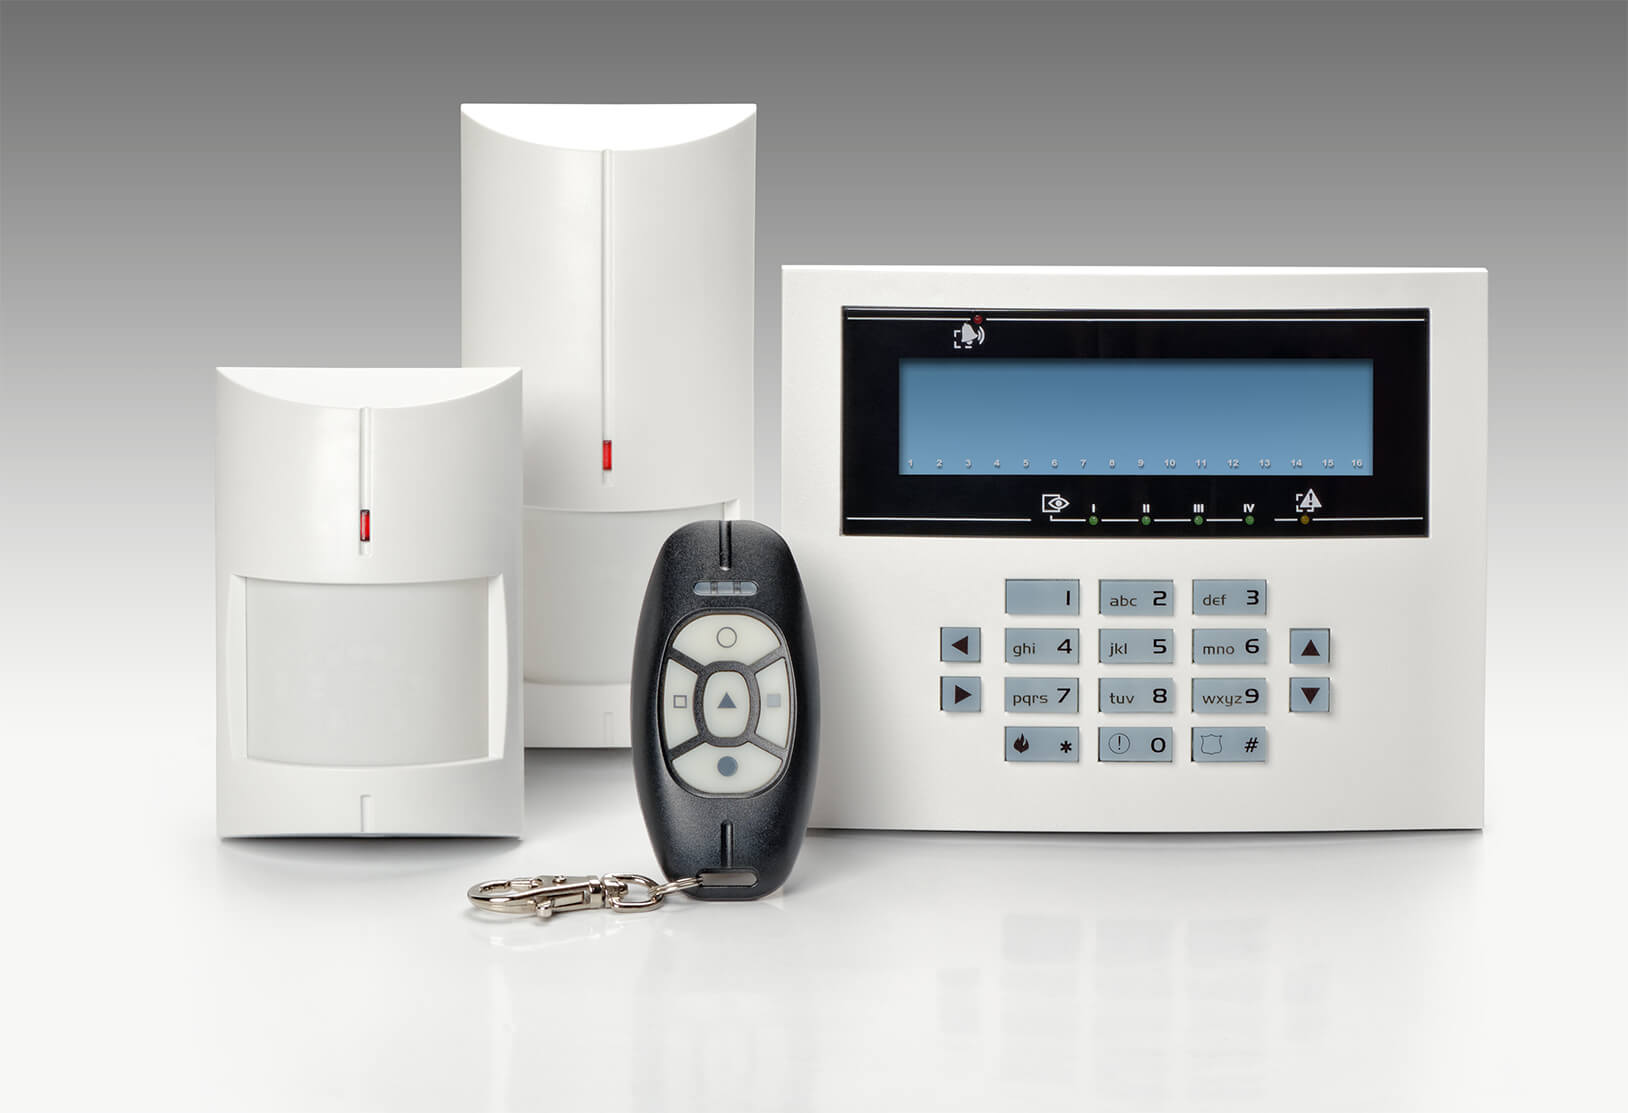 Commercial Burglar Alarms For Business in Tottenham N5  - Local Tottenham N5 burglar alarm company.Call 02078872244 - Dedicated to Safety & Security. Companies, shops and homes ..